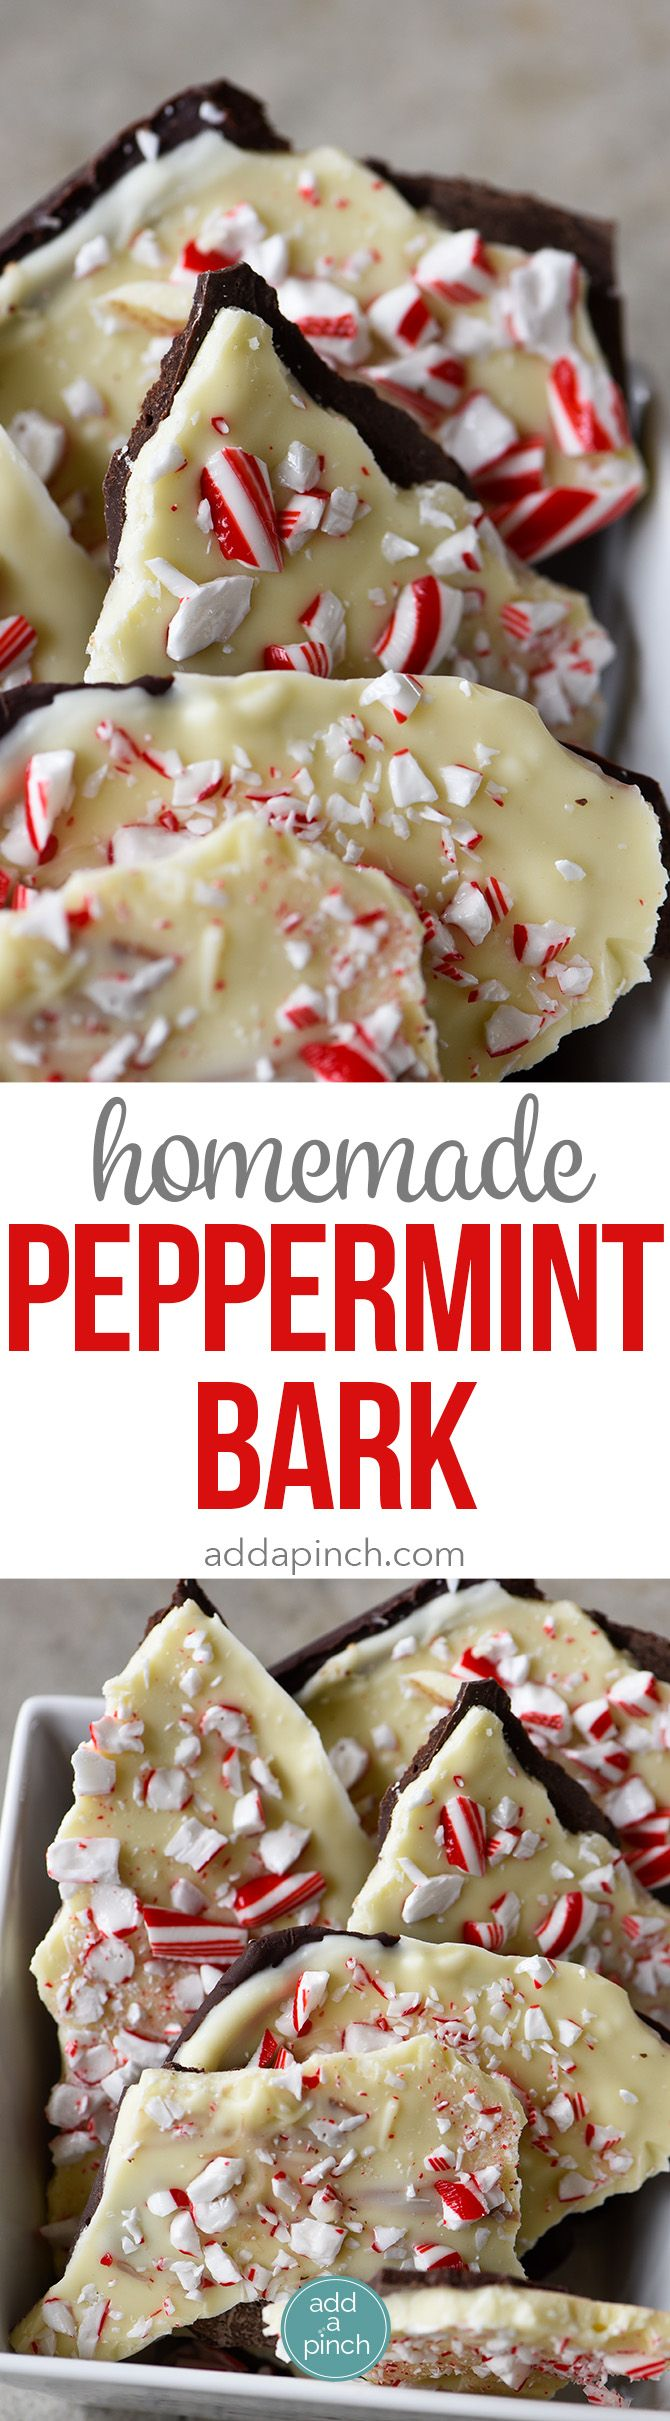 Homemade Peppermints 44444441 Recipe - Peppermint Bark makes a favorite holiday treat! This homemade peppermint bark recipe is made with layers of peppermint filled milk chocolate and white chocolate and then topped with peppermint candy. // addapinch.com